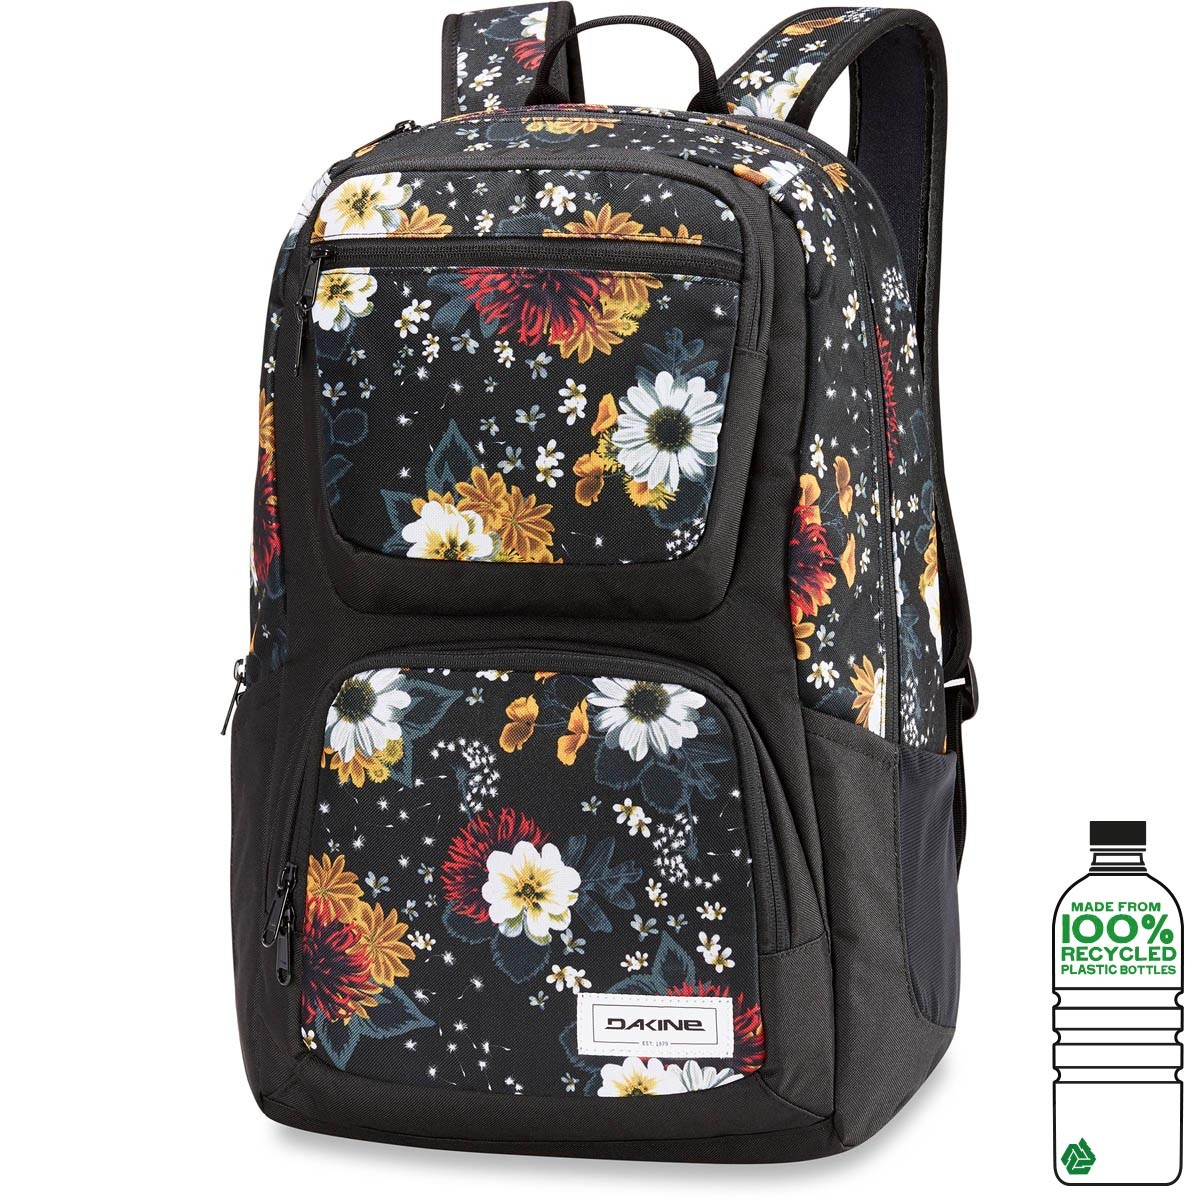 dc73973f2f4a5 Dakine Jewel 26L Backpack Winter Daisy